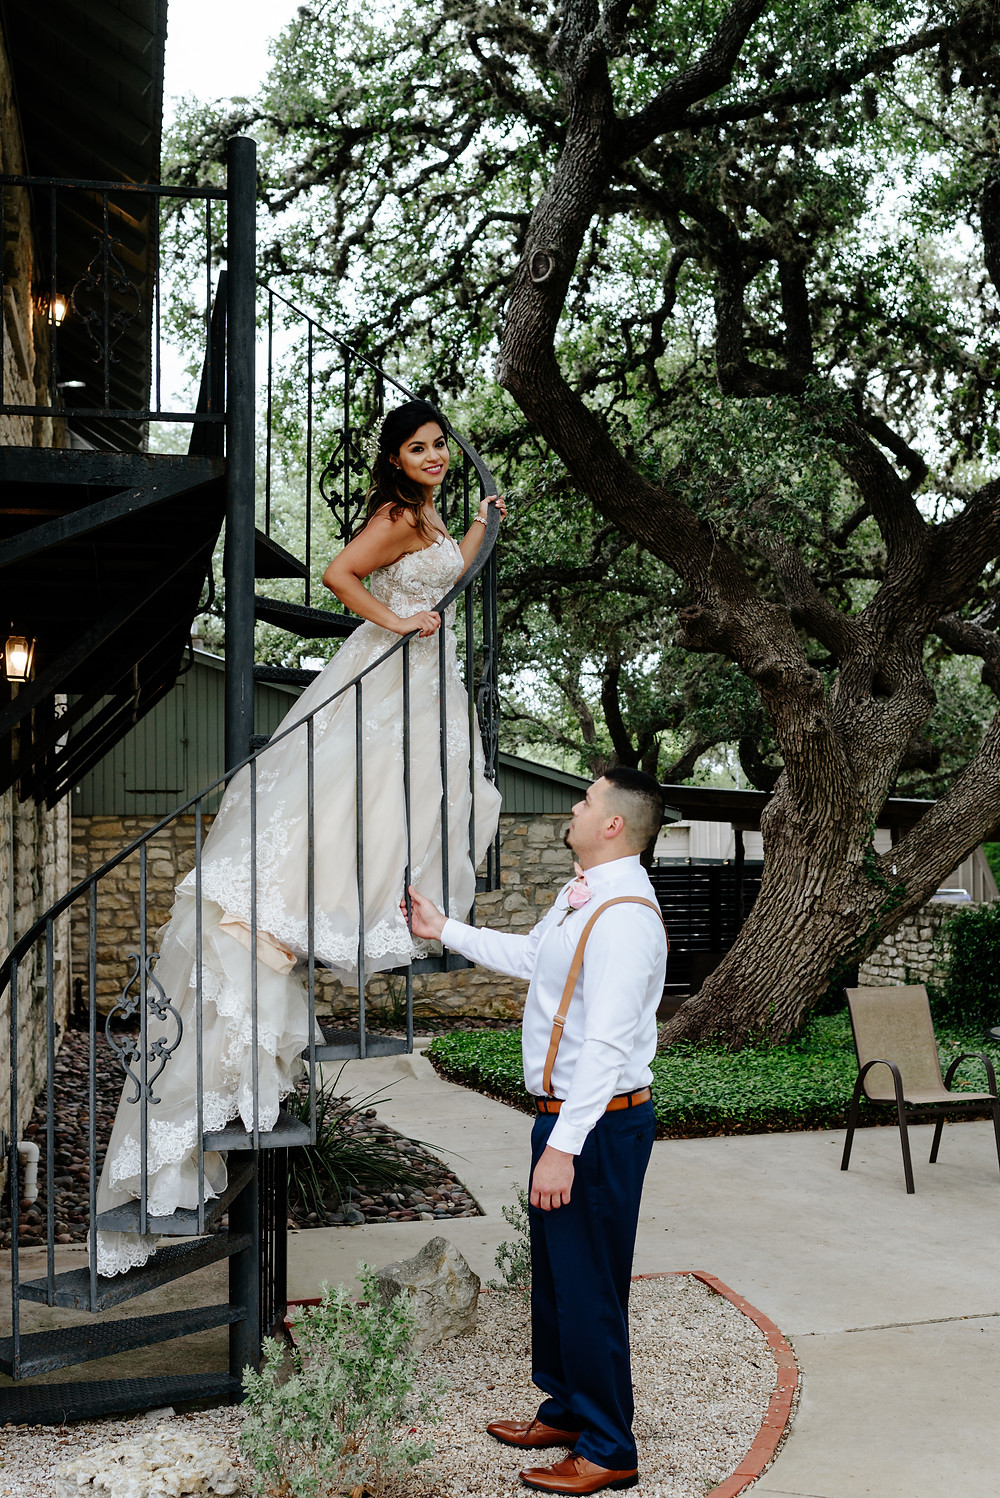 bride and groom wedding portrait austin texas on a spiral staircase